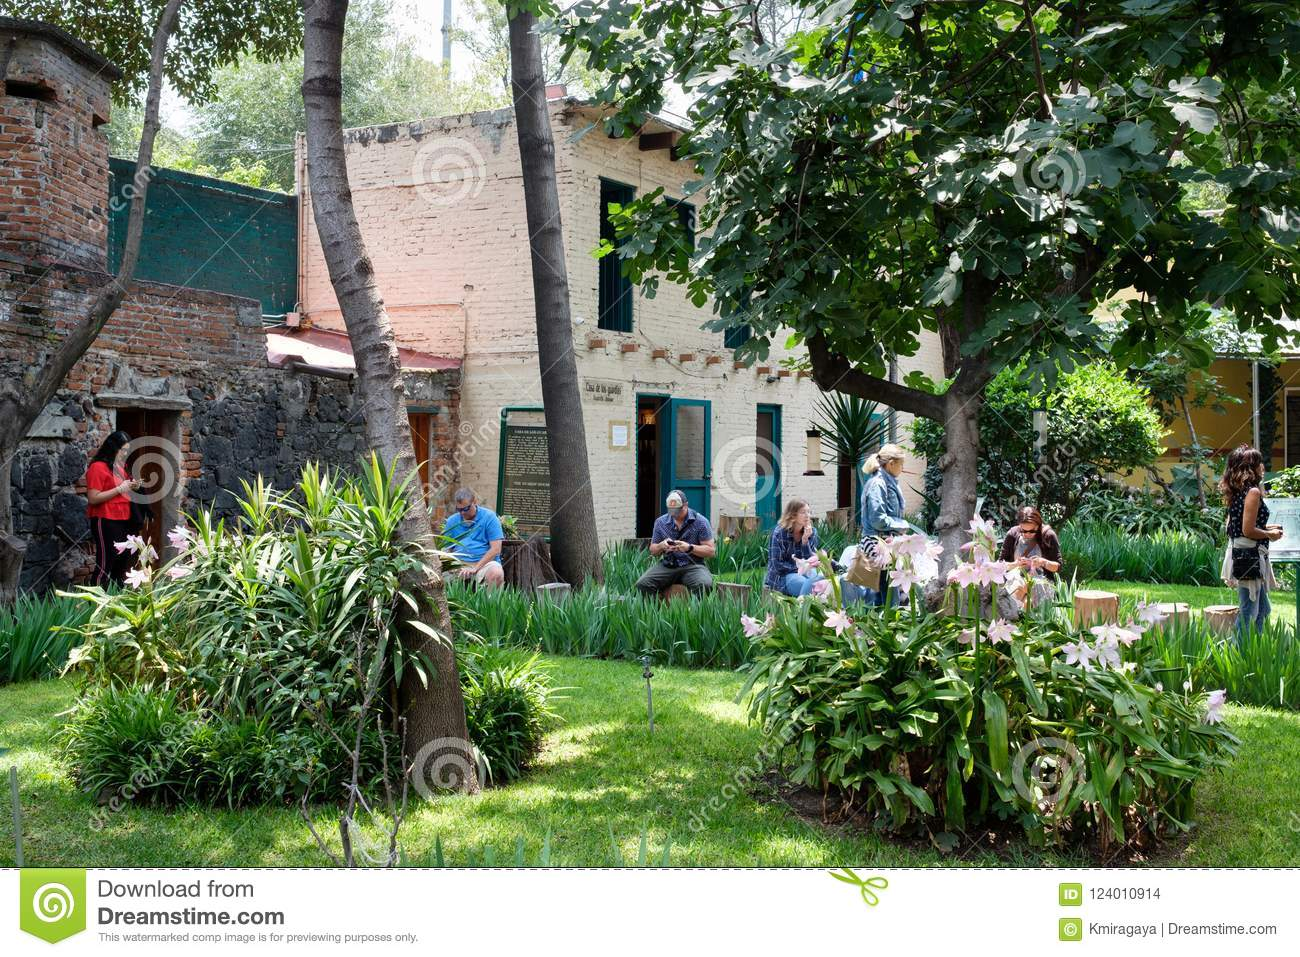 The house of the exiled soviet leader Leon Trotsky in Coyoacan,